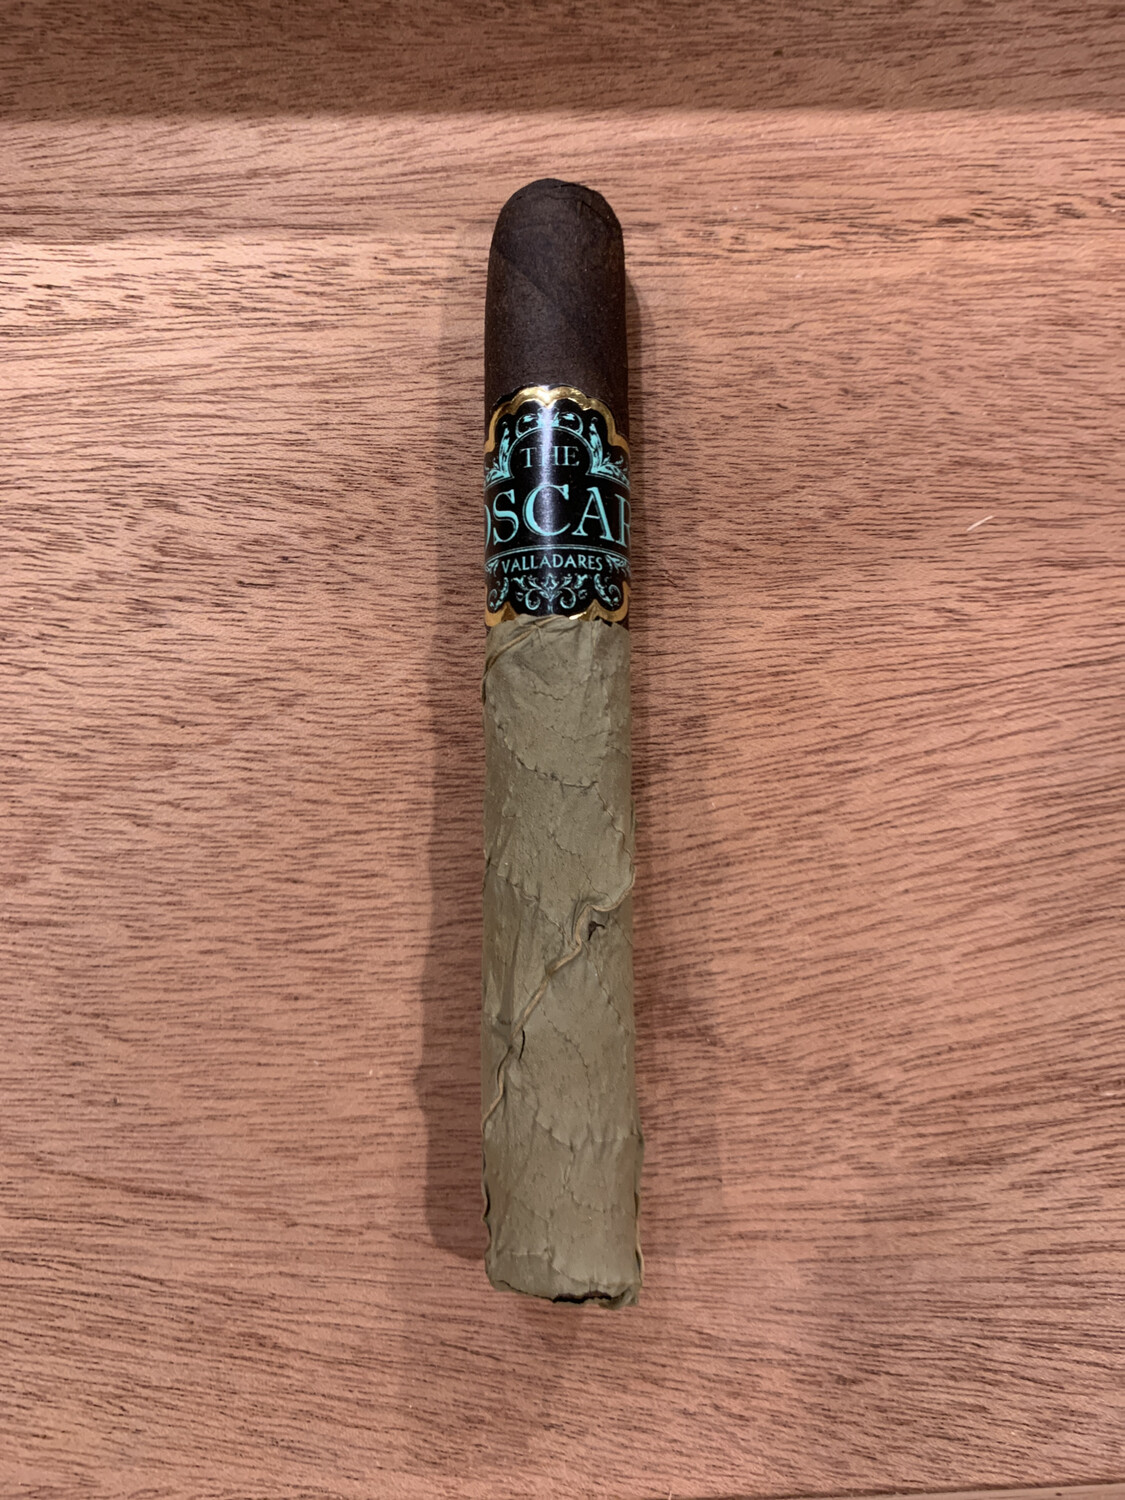 Oscar - The Oscar By Oscar Habano 6X52